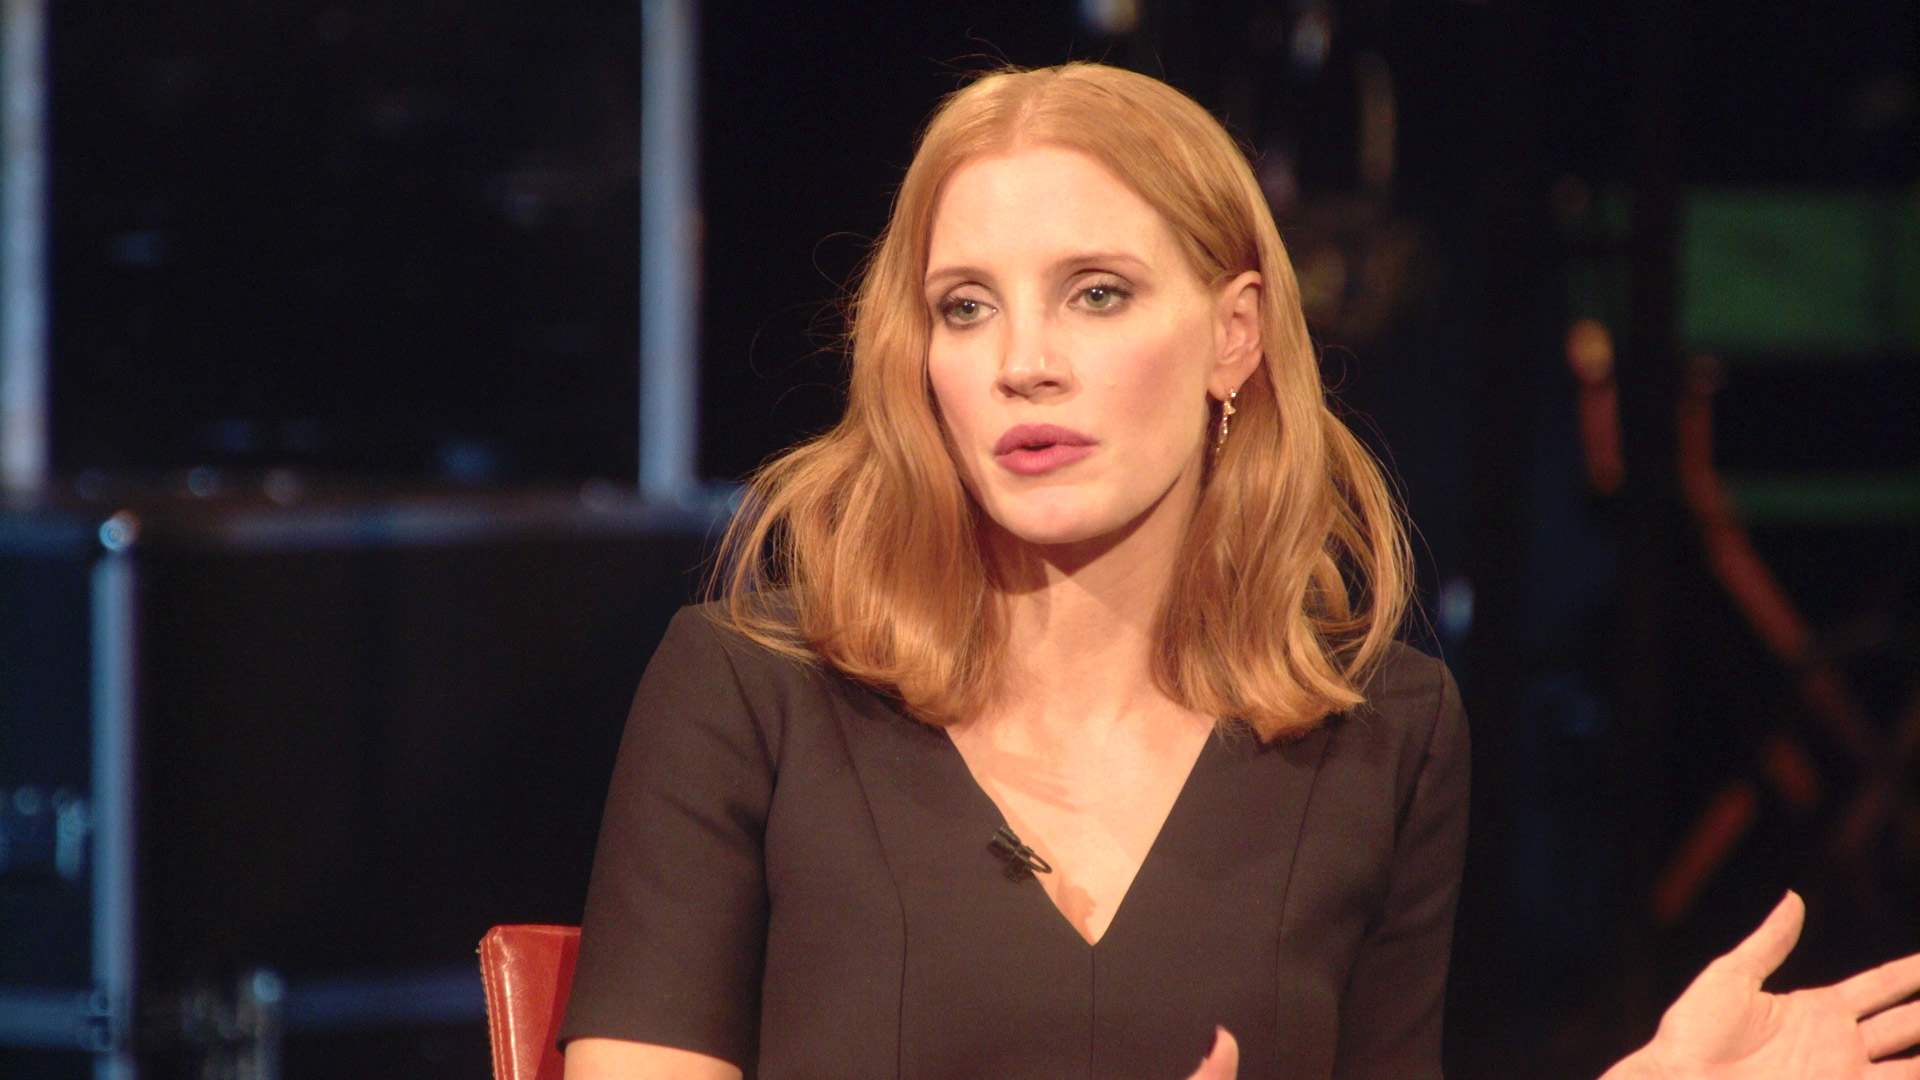 Jessica Chastain on the Importance of Miss Sloane's Imperfection